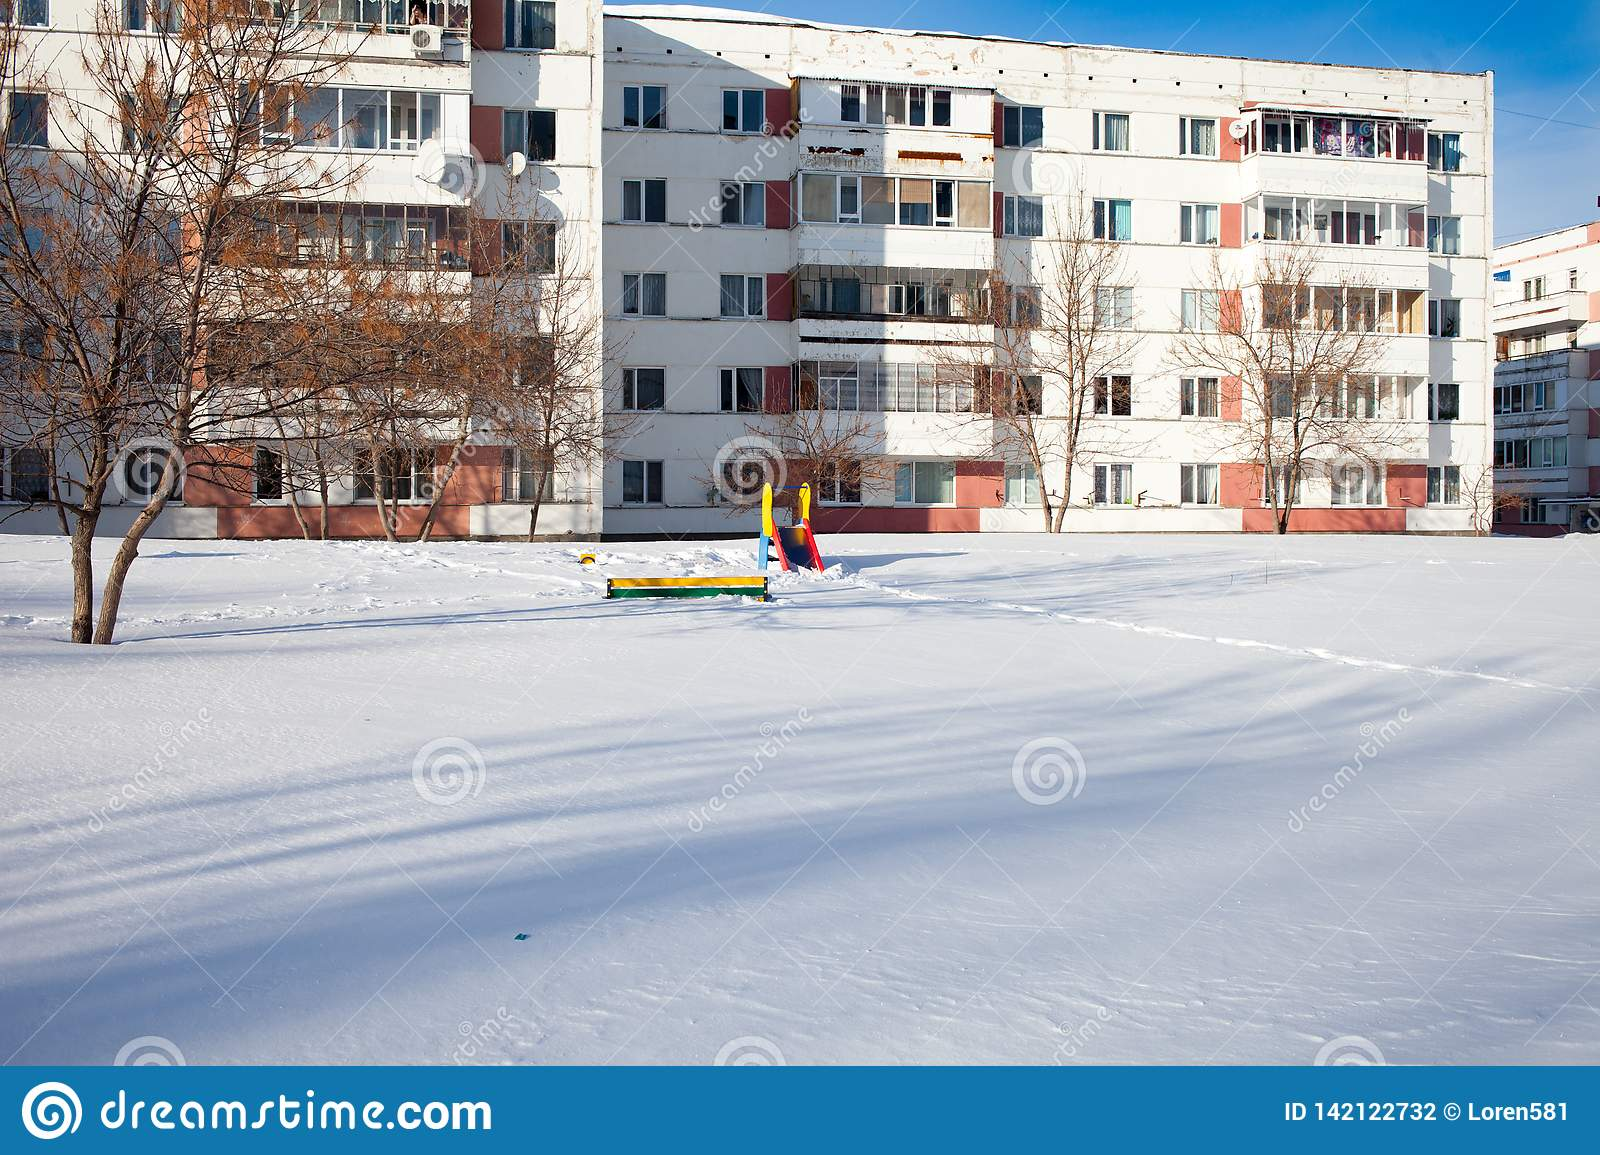 Snow-covered children`s and sports grounds in Russia. Poor cleaning of snow. Inaction of public services